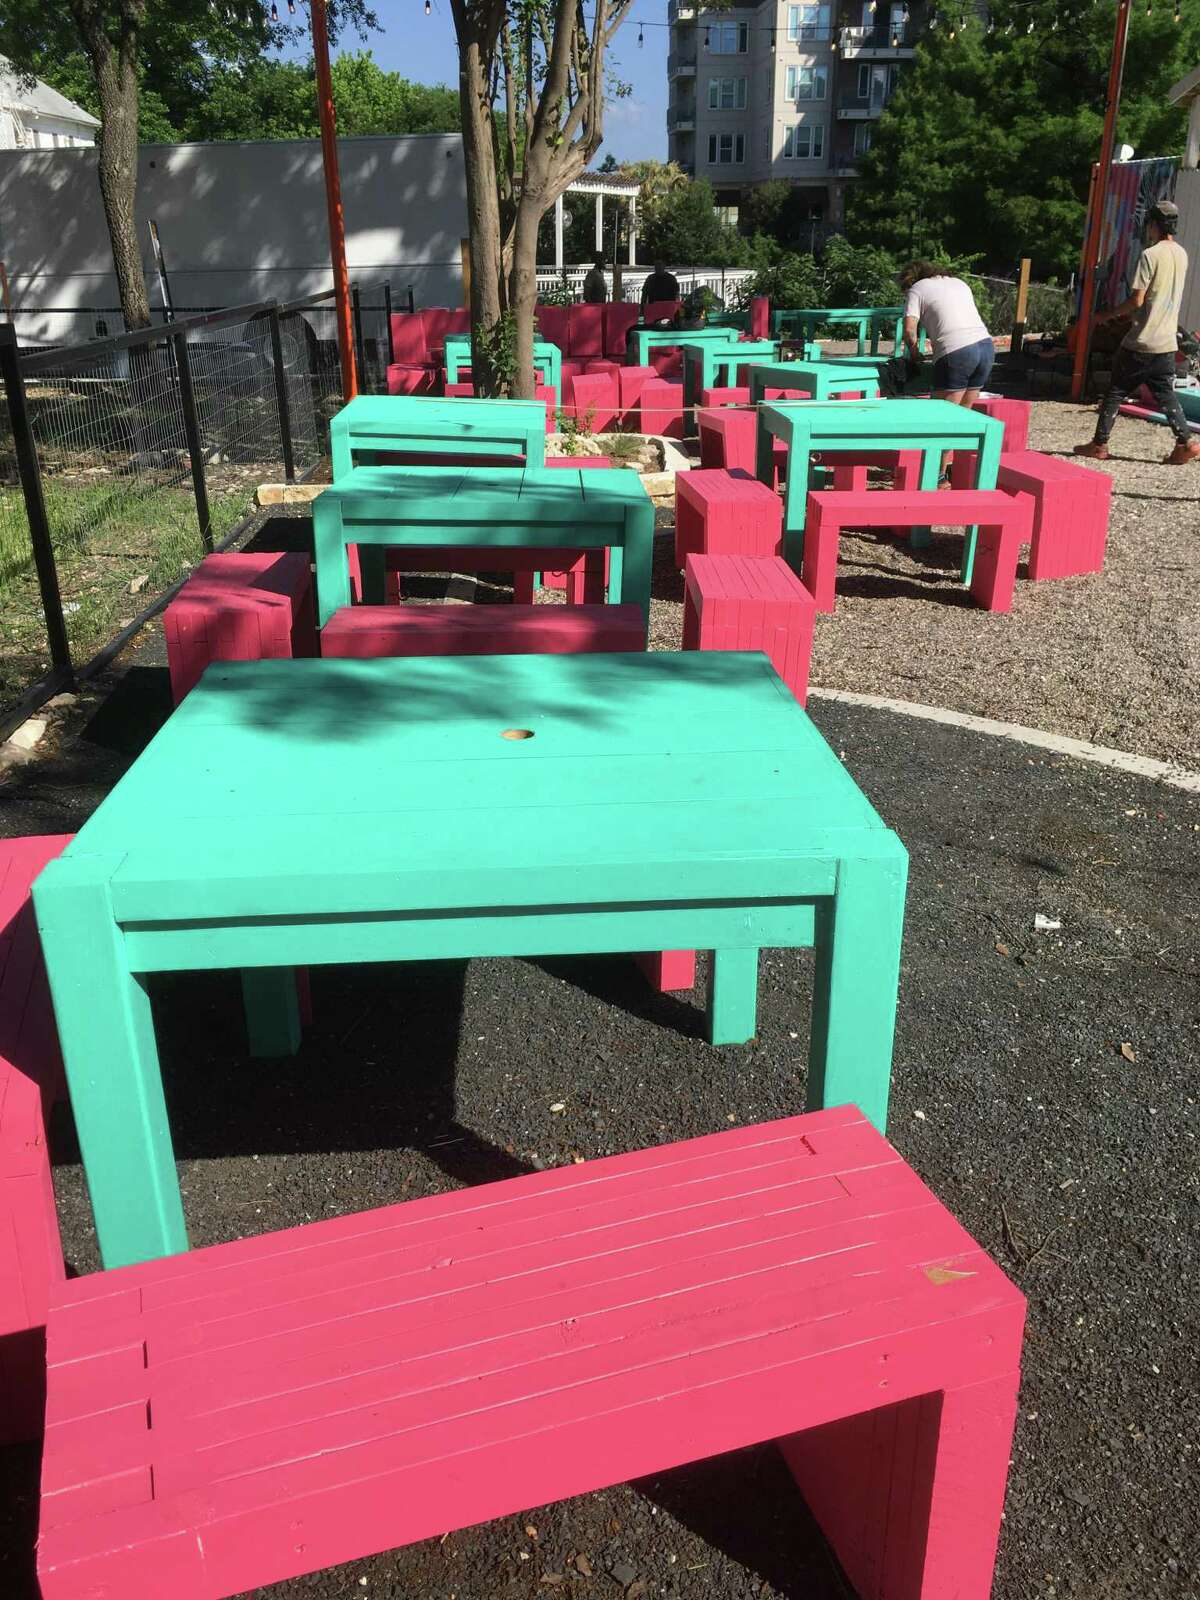 El Camino features a large deck and outdoor seating at bright pink and turquoise tables and chairs.